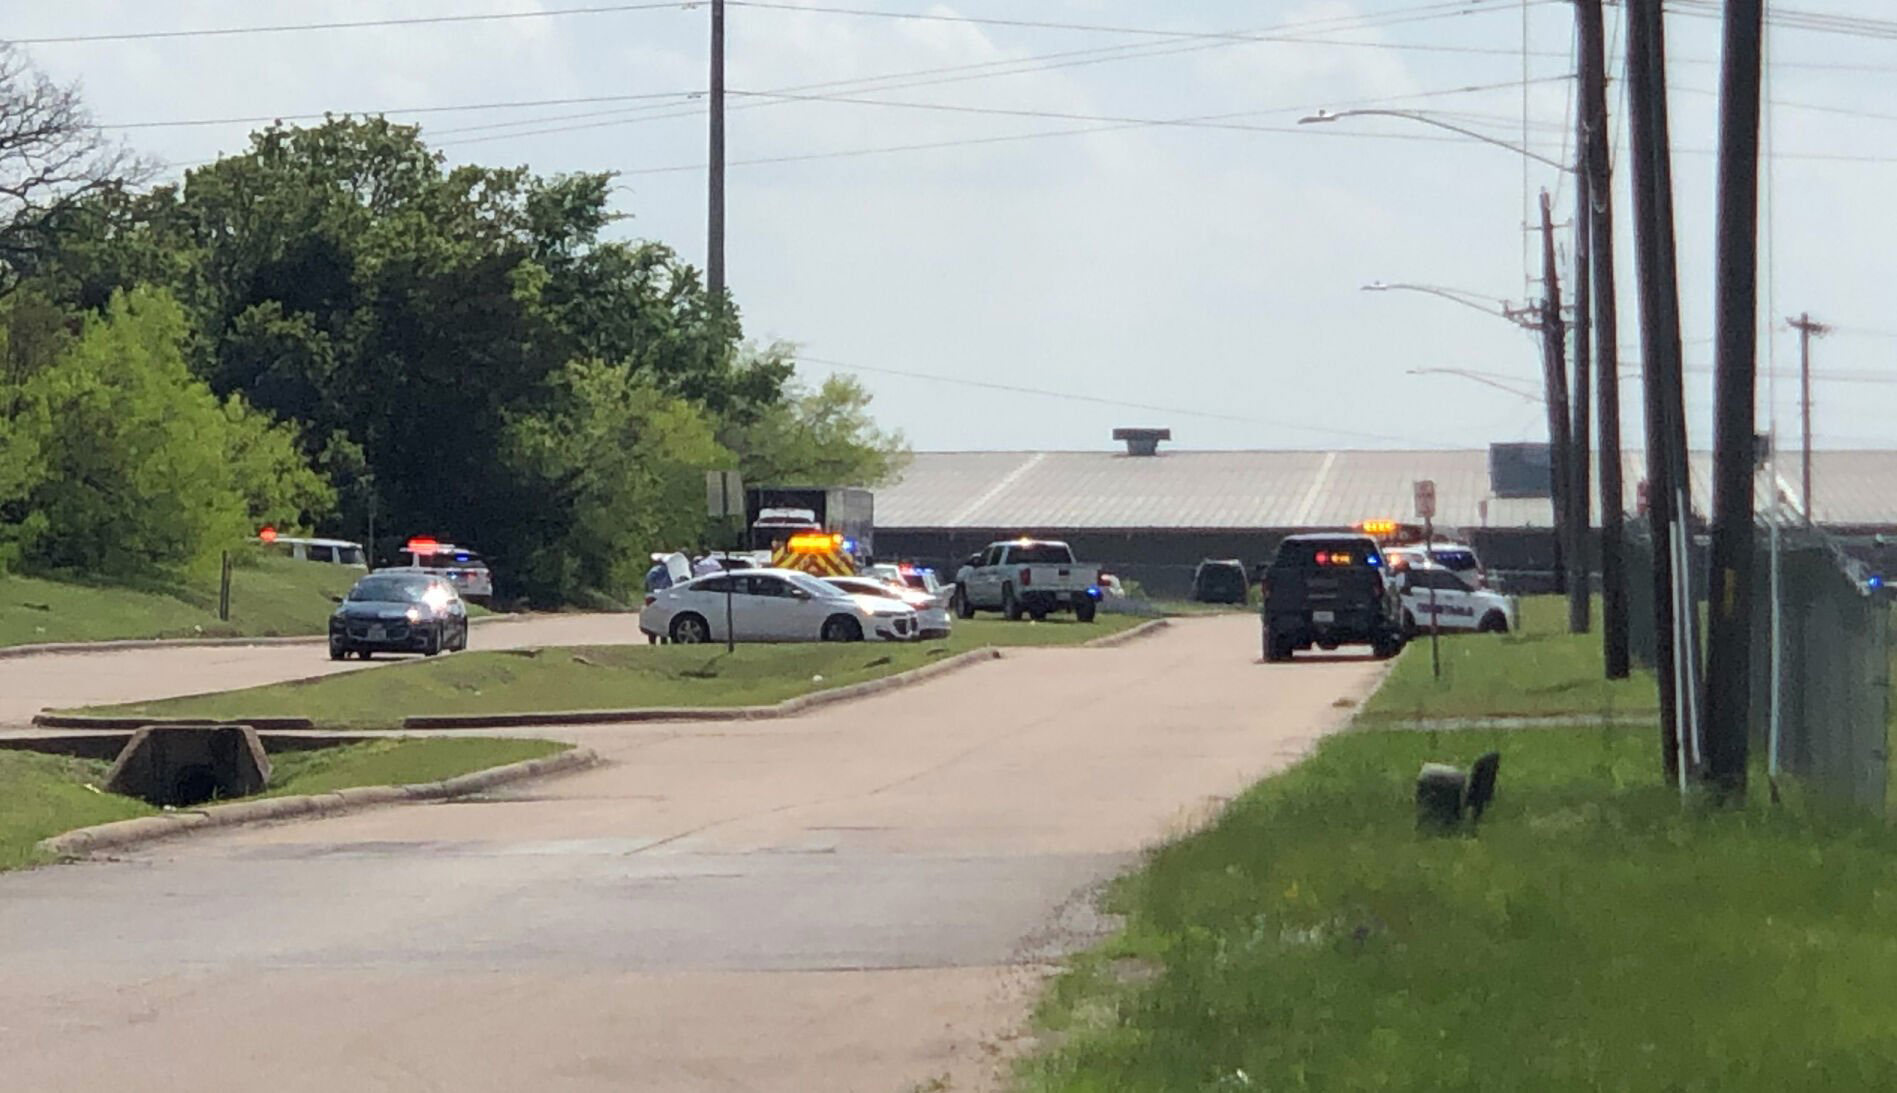 Law enforcement responds to a reported shooting at Kent Moore Cabinets in Bryan, Texas, on April 8, 2021.